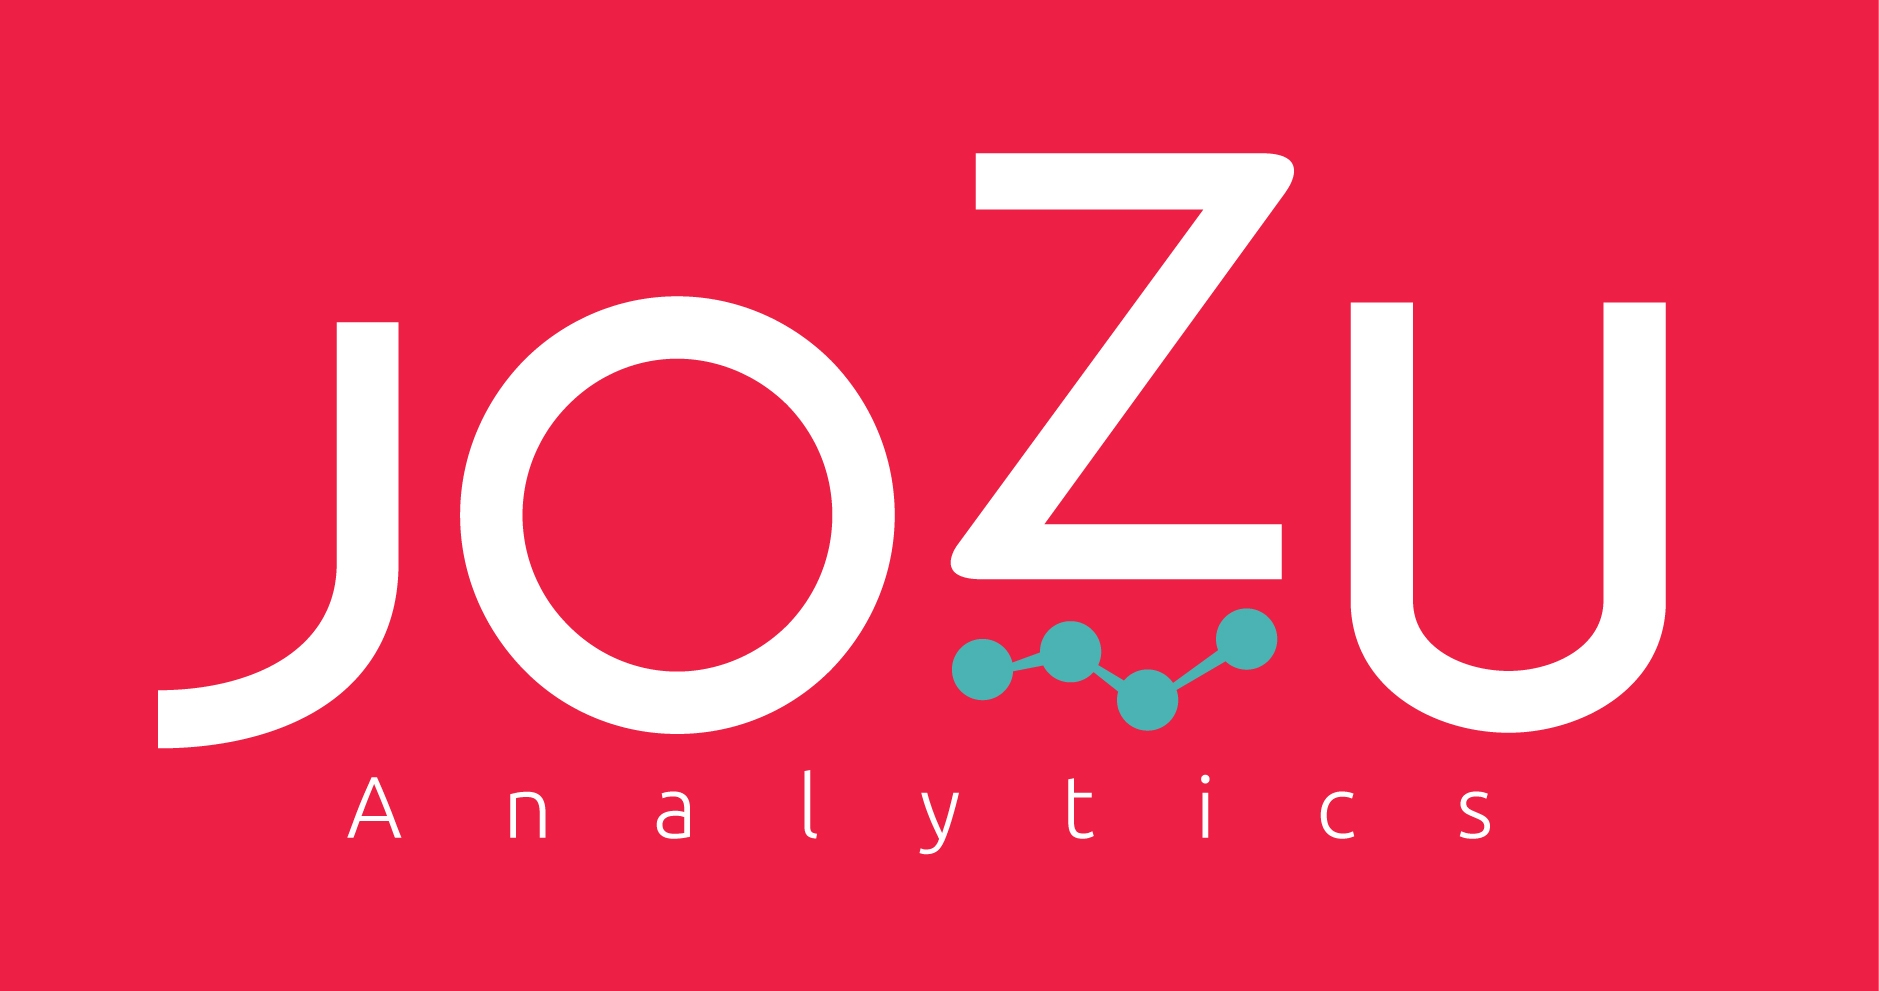 JOZU_analytics-Logo-hires.jpg